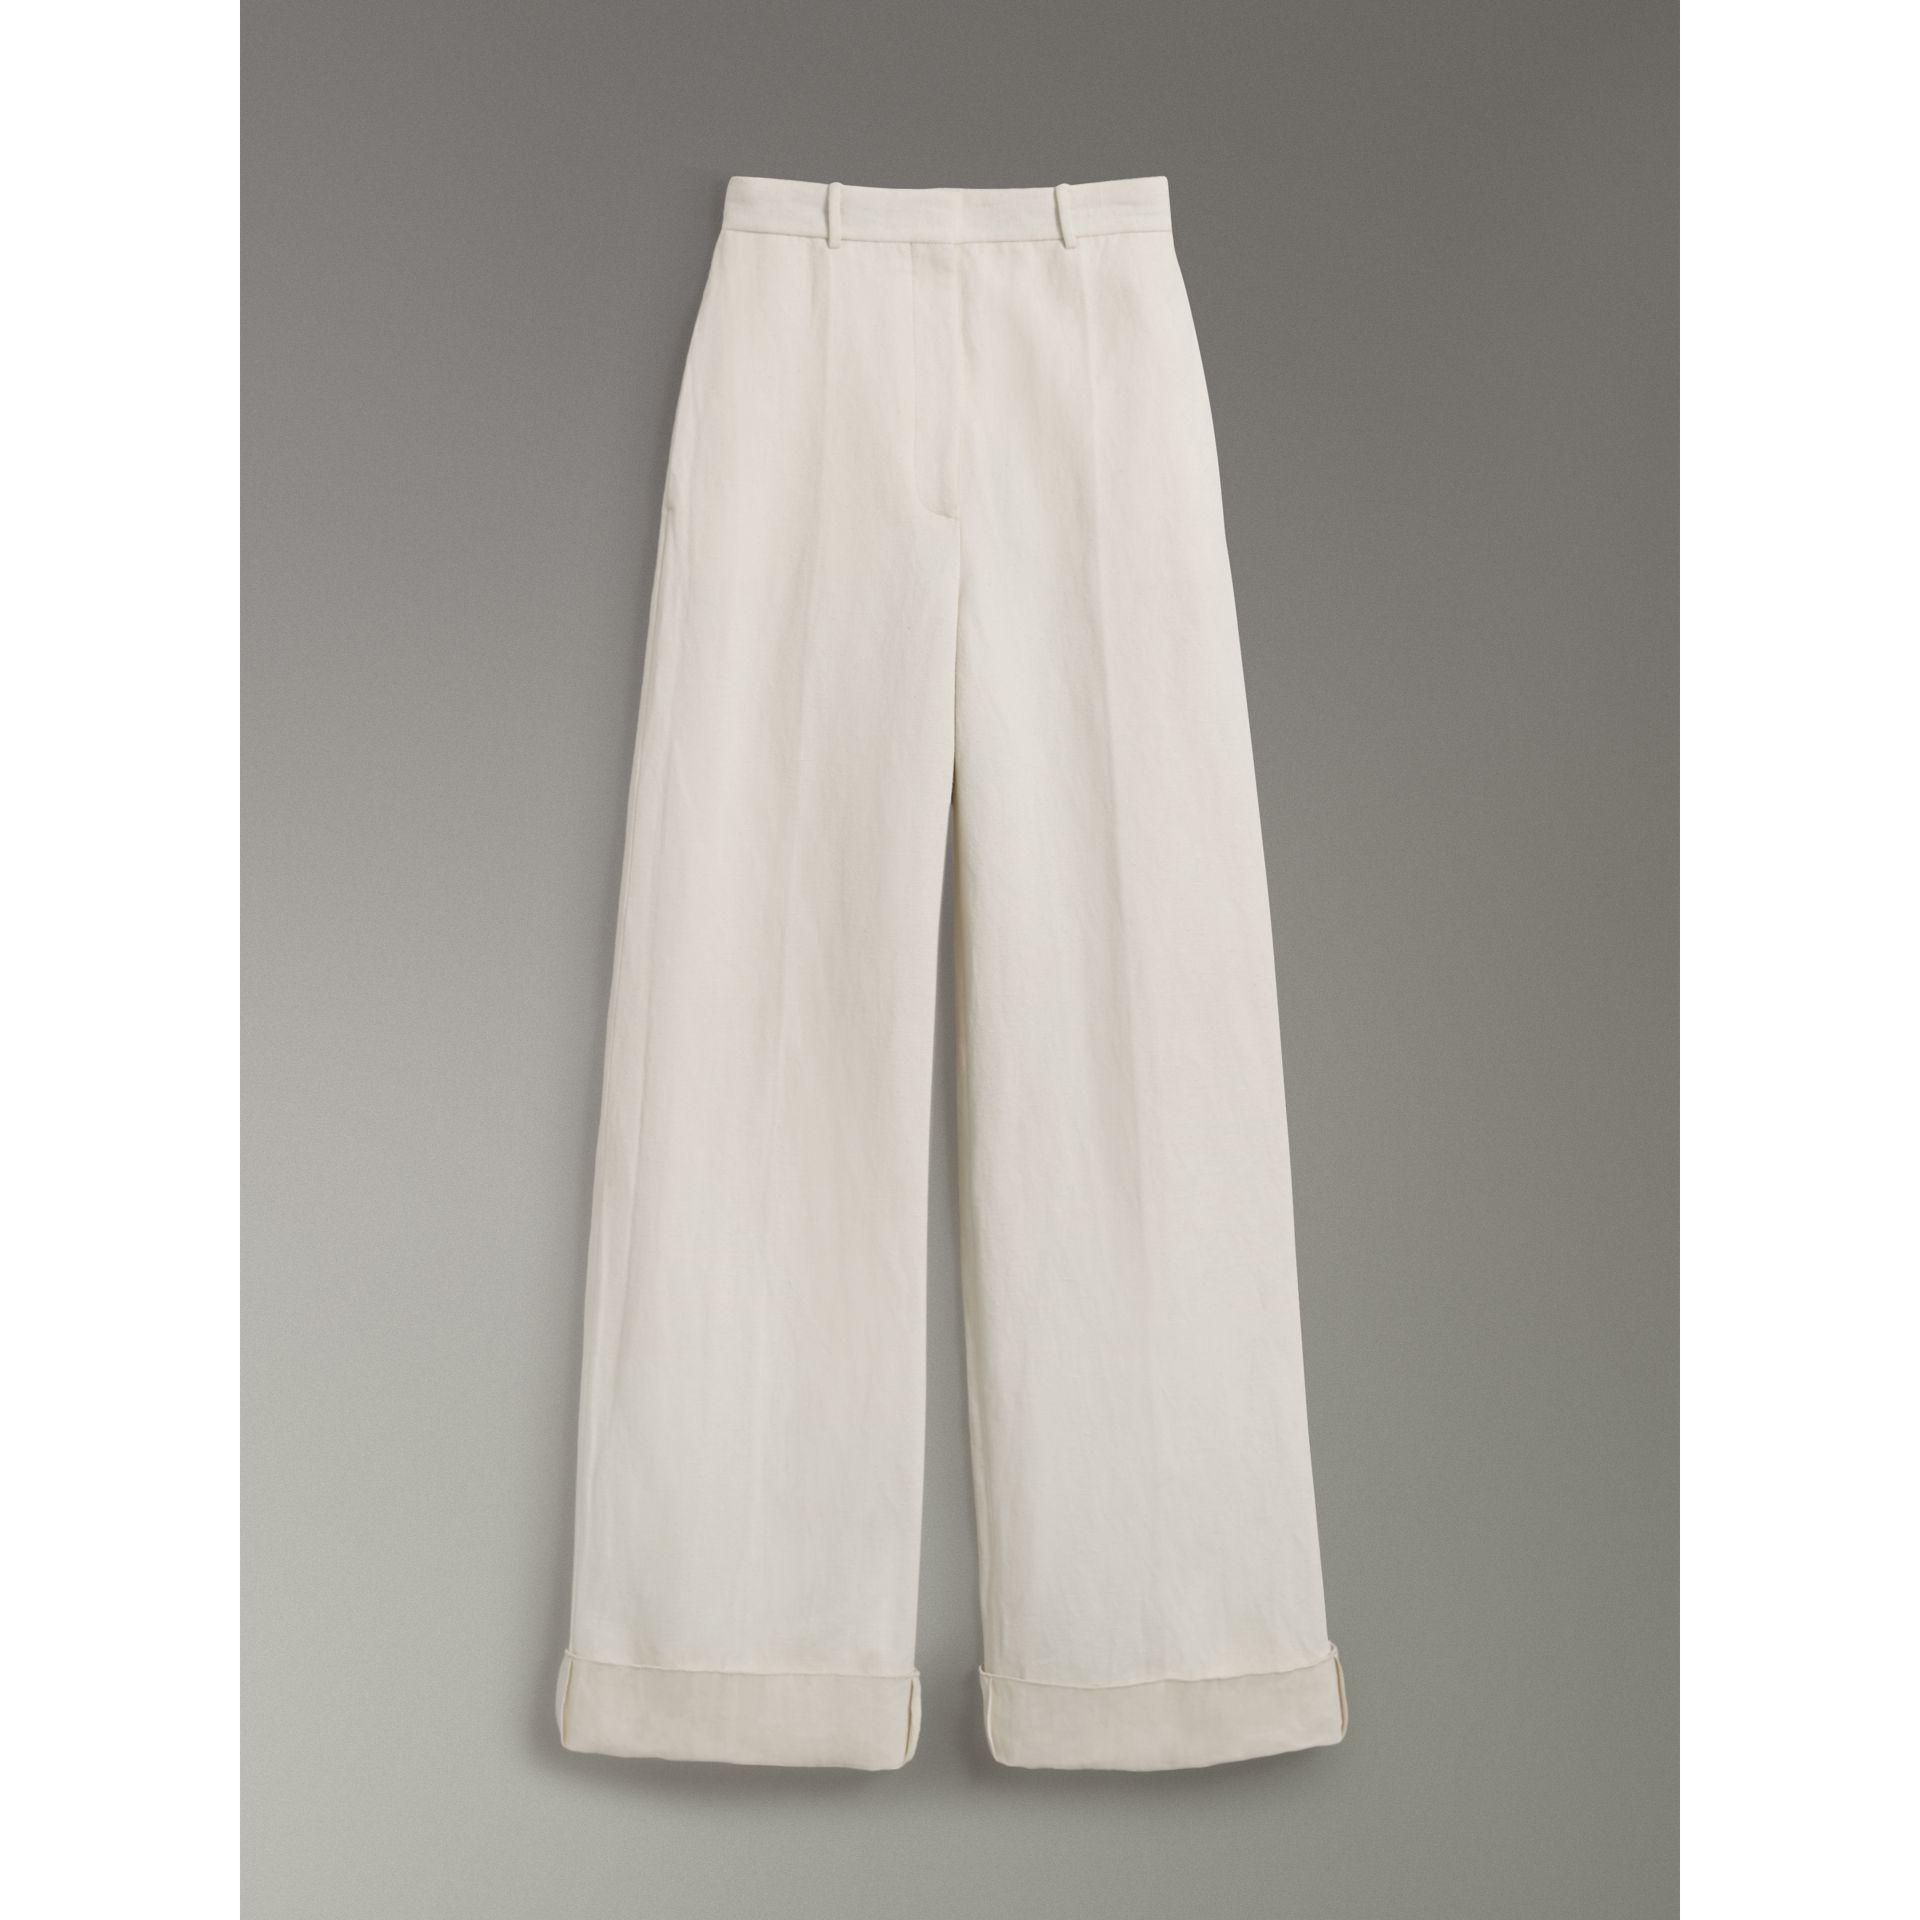 Cotton Linen Canvas Wide-leg Trousers in Off White - Women | Burberry United Kingdom - gallery image 3